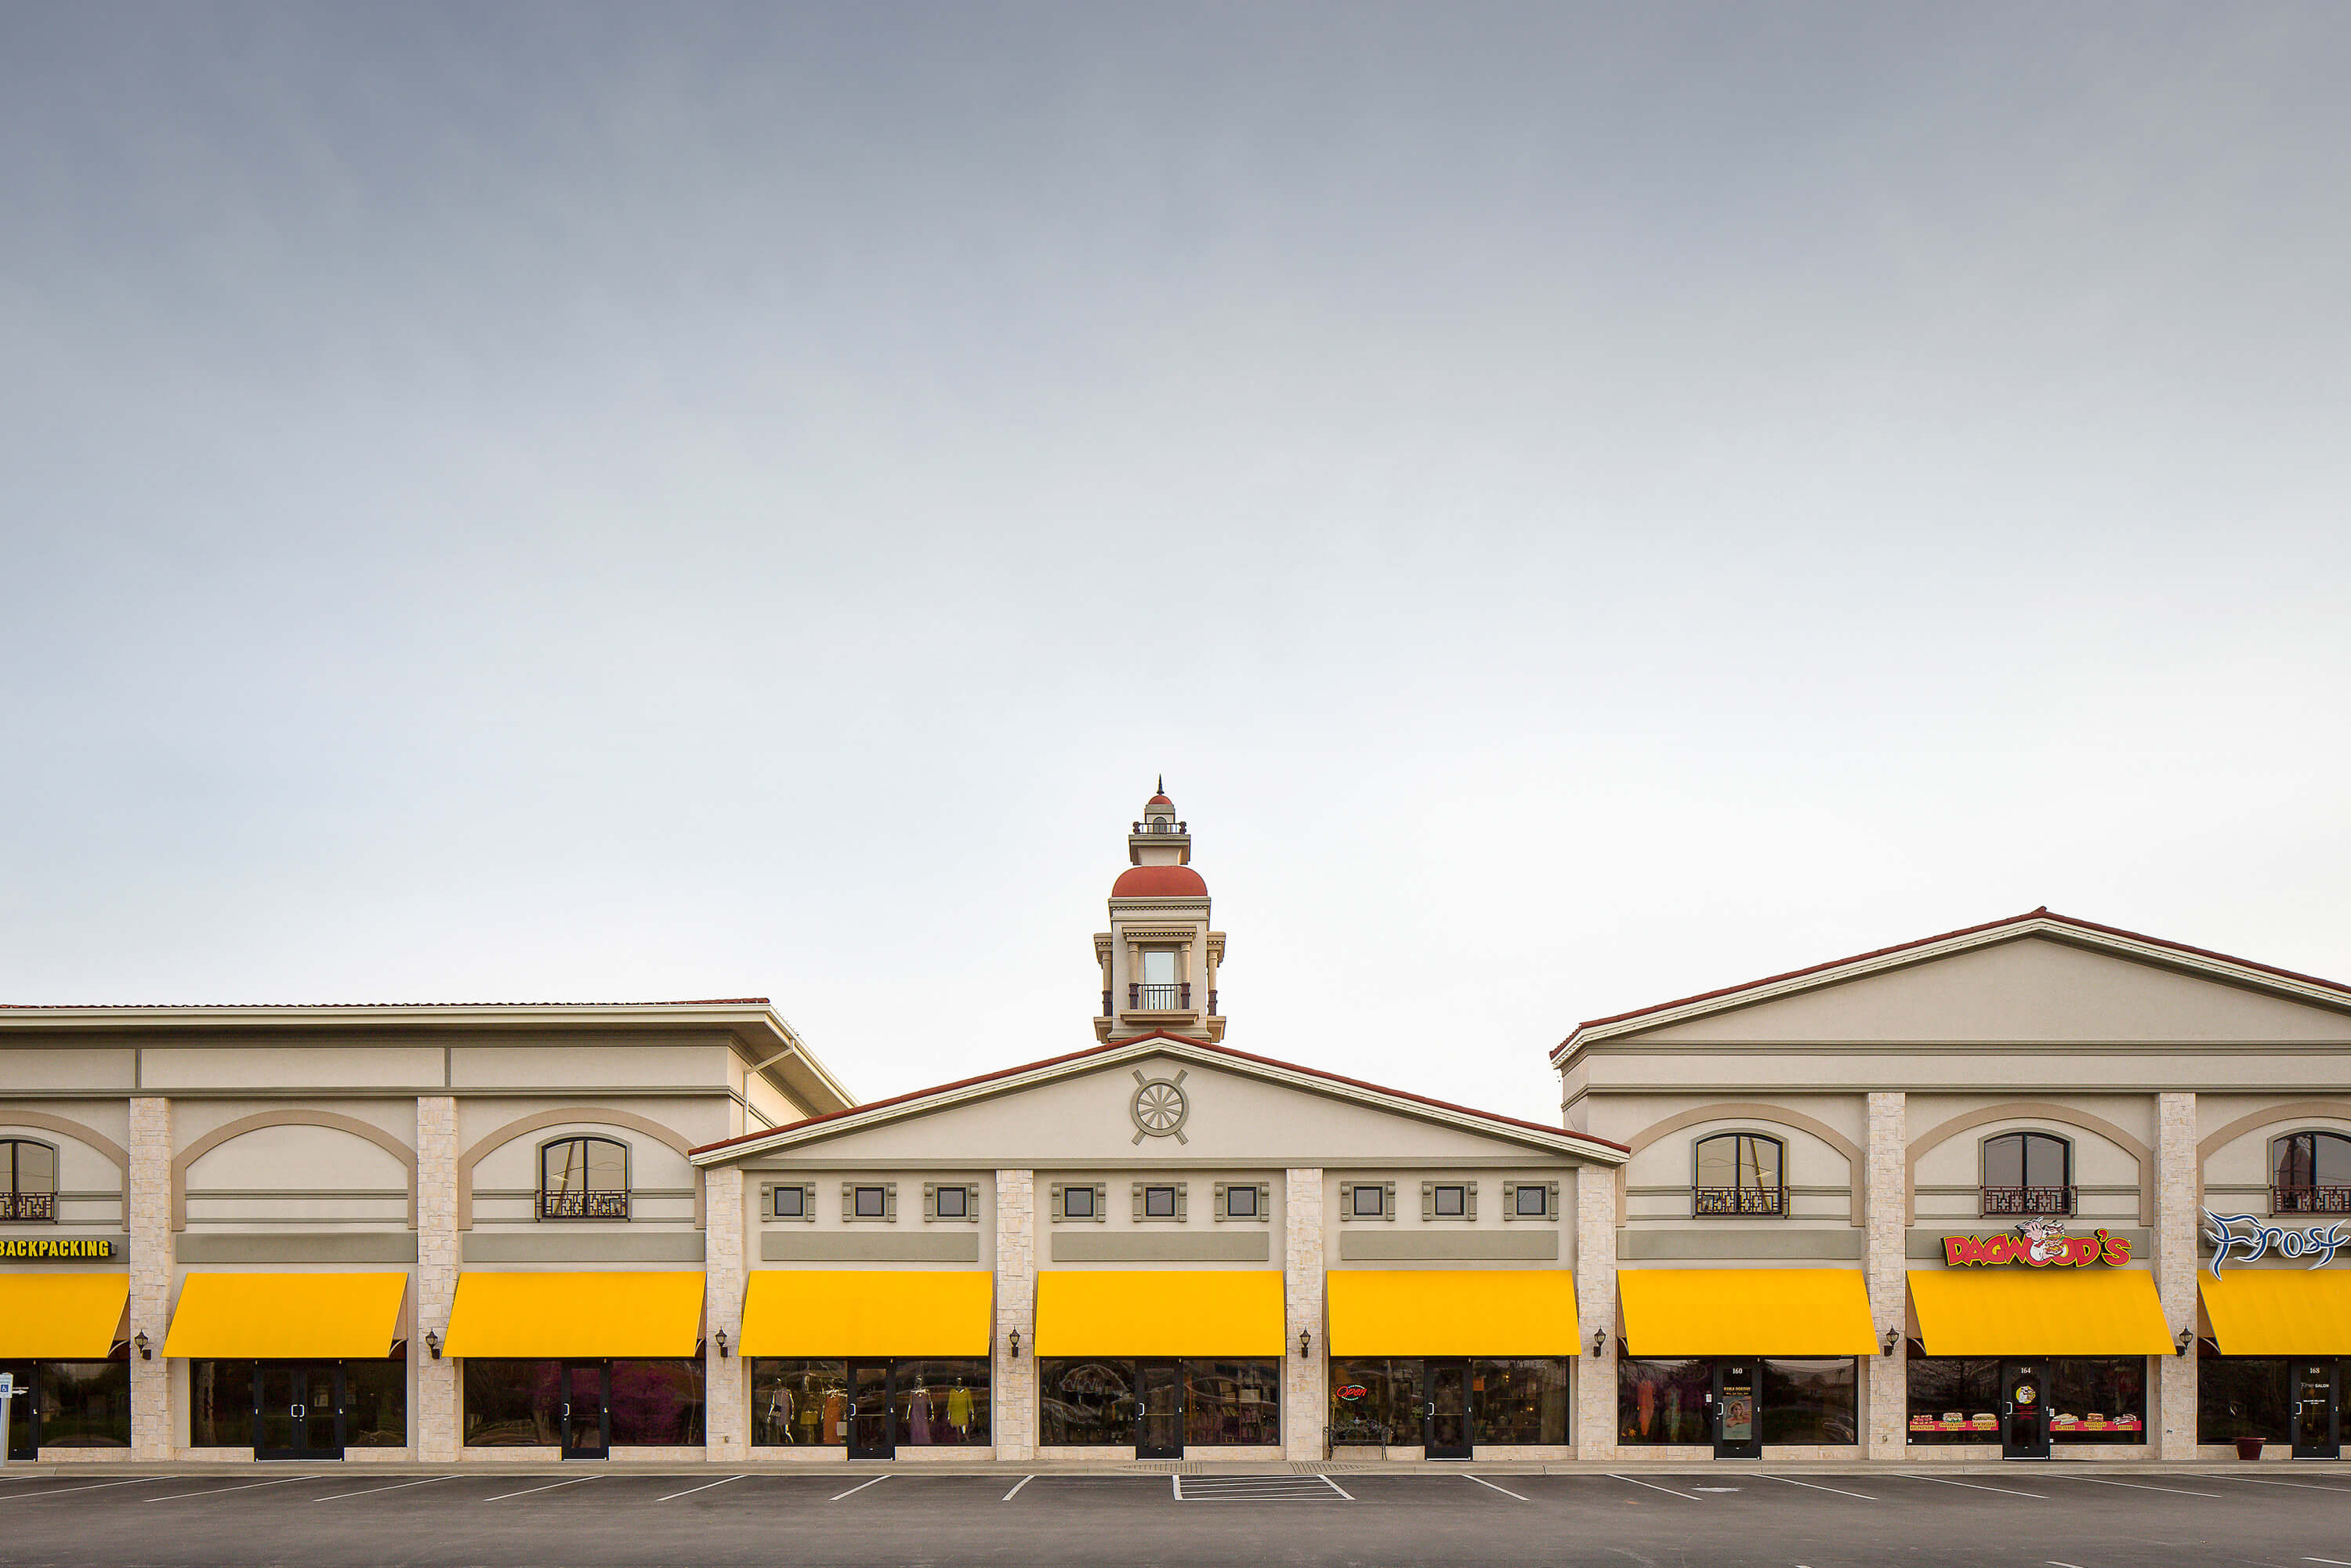 Yellow Fixed Frame Awning Made With Sunbrella Clarity Fabric At Shopping Center